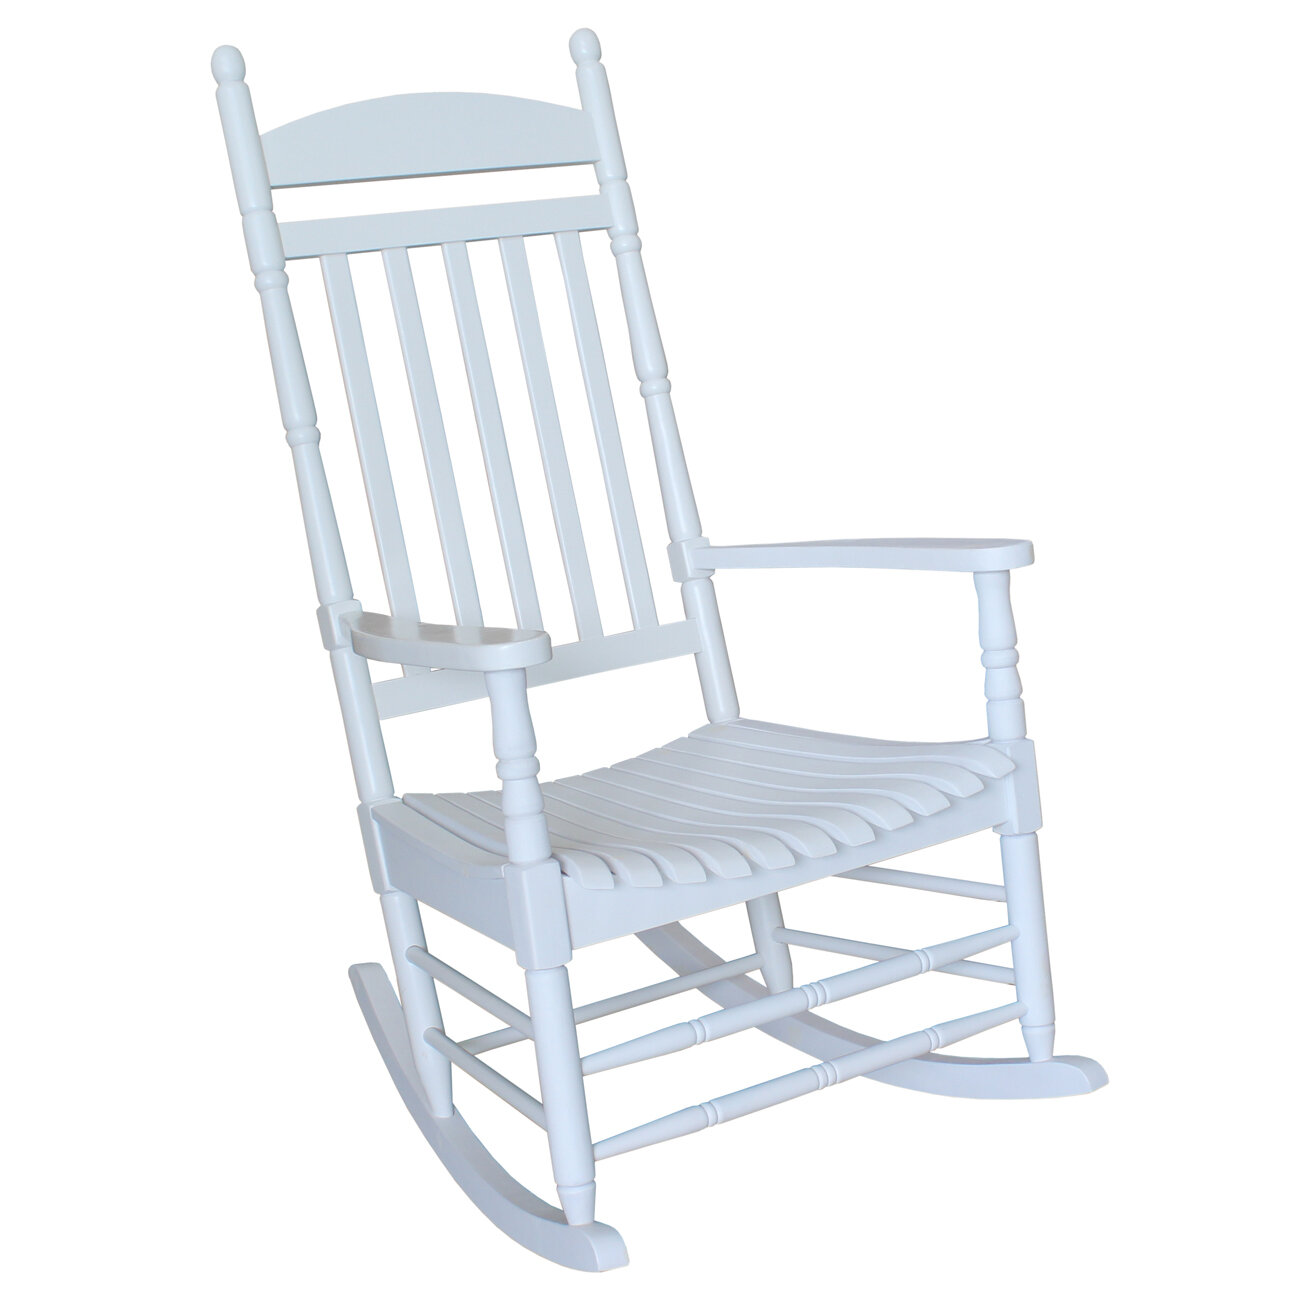 Details about International Concepts Solid Wood Rocking Chair